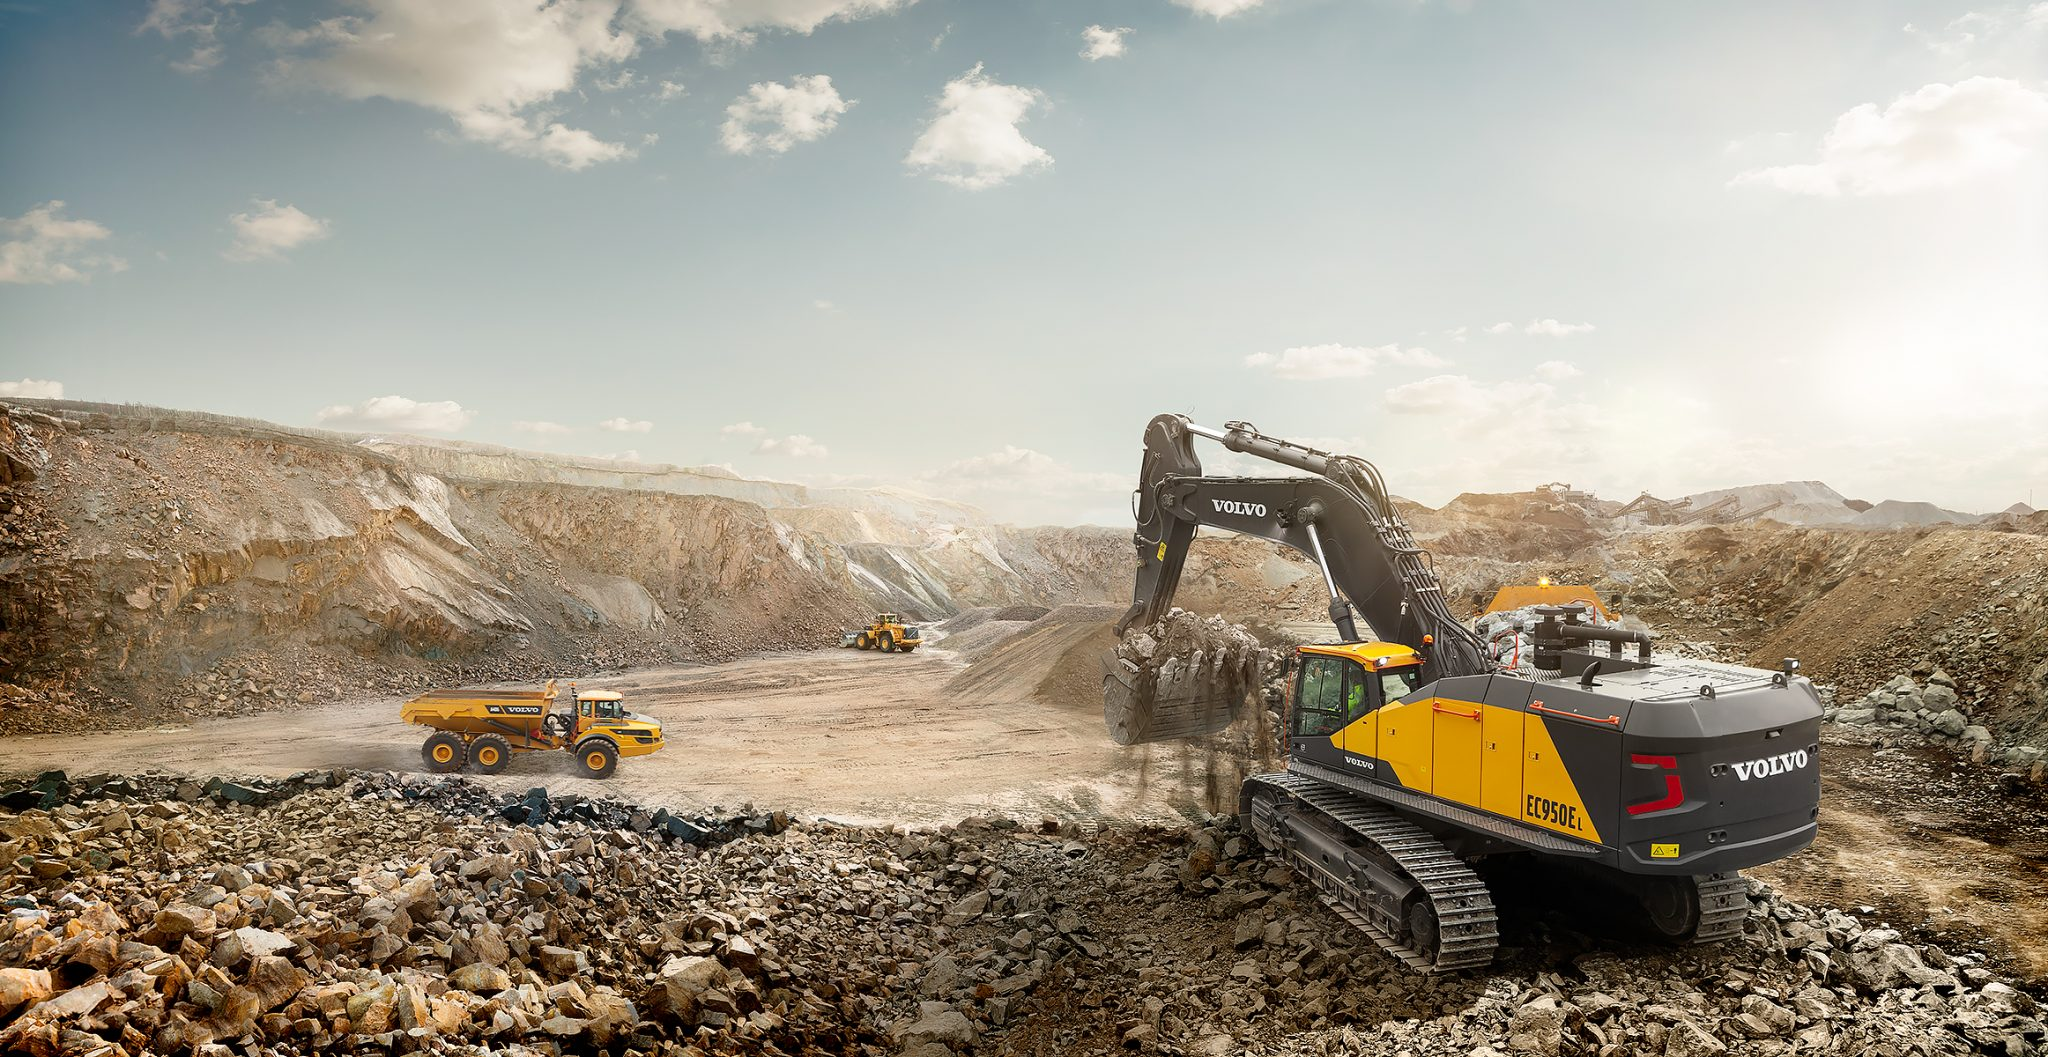 Volvo CE's EC950E crawler is one of the many machines which the company will be 3D printing spare parts for. Photo via Volvo CE